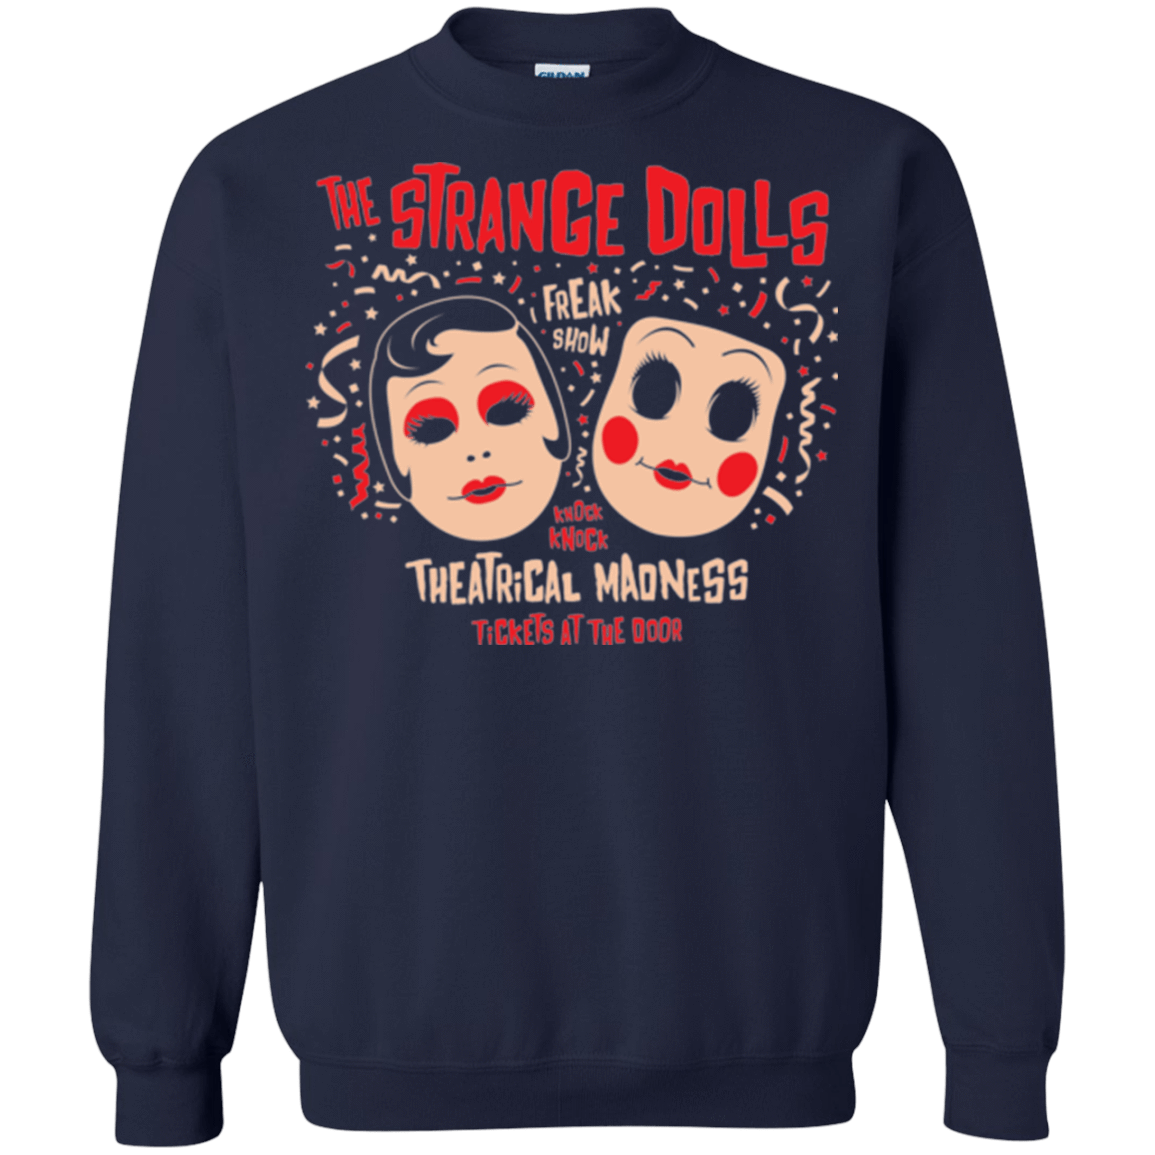 Sweatshirts Navy / Small STRANGE DOLLS Crewneck Sweatshirt